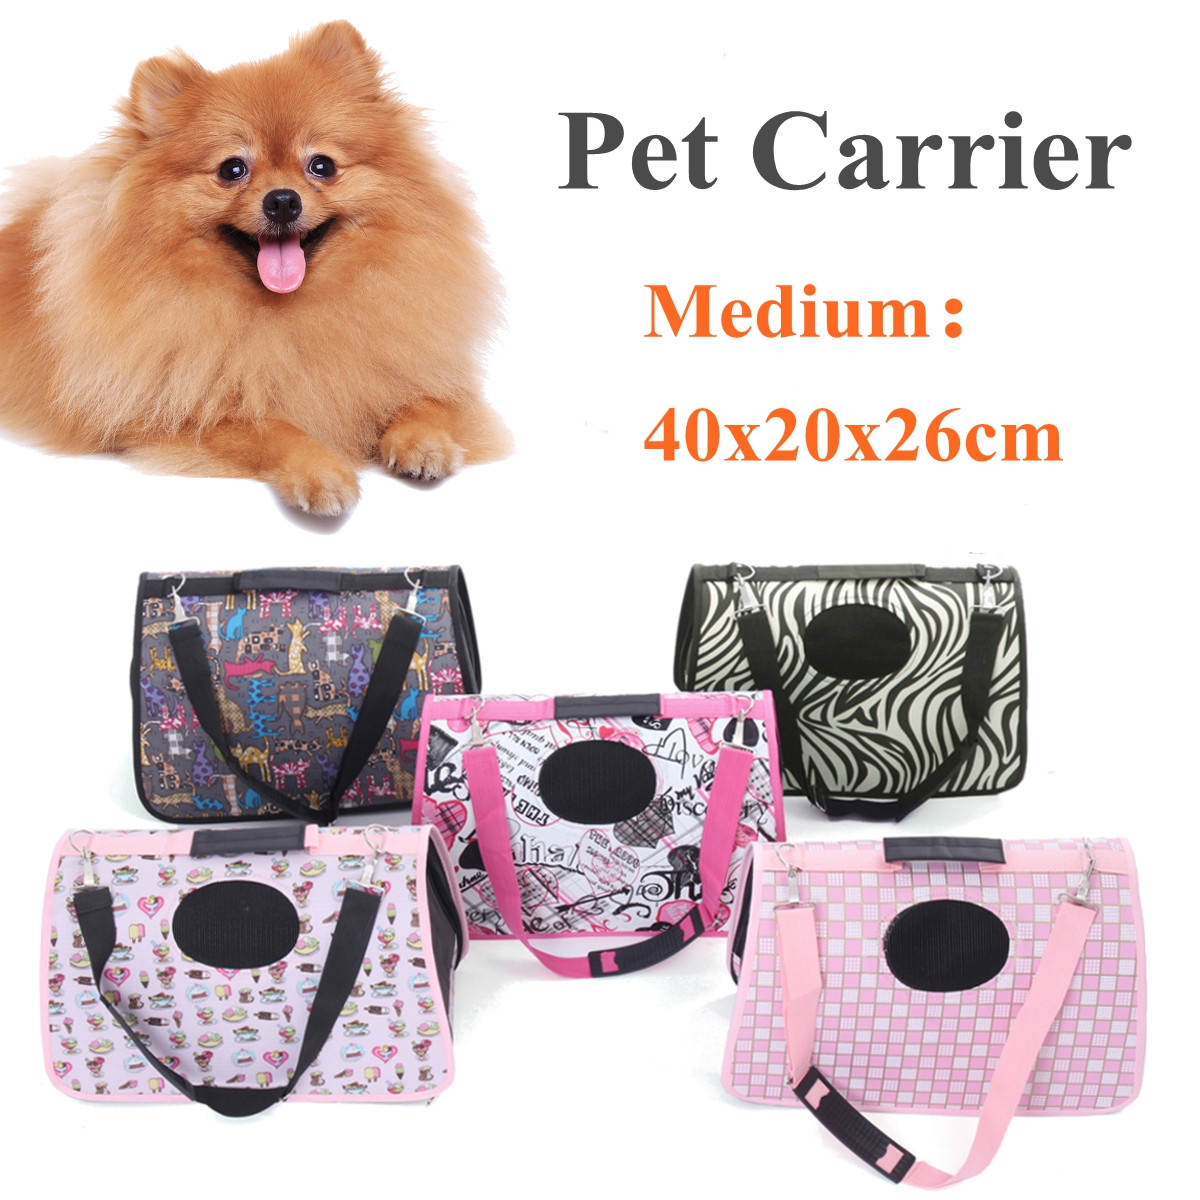 40x20x26cm Pet Carrier Puppy Dog Cat Outdoor Travel Shoulder Bag Carry Carrier Tote Cage Bag Crates Soft Kennel Pet Cage